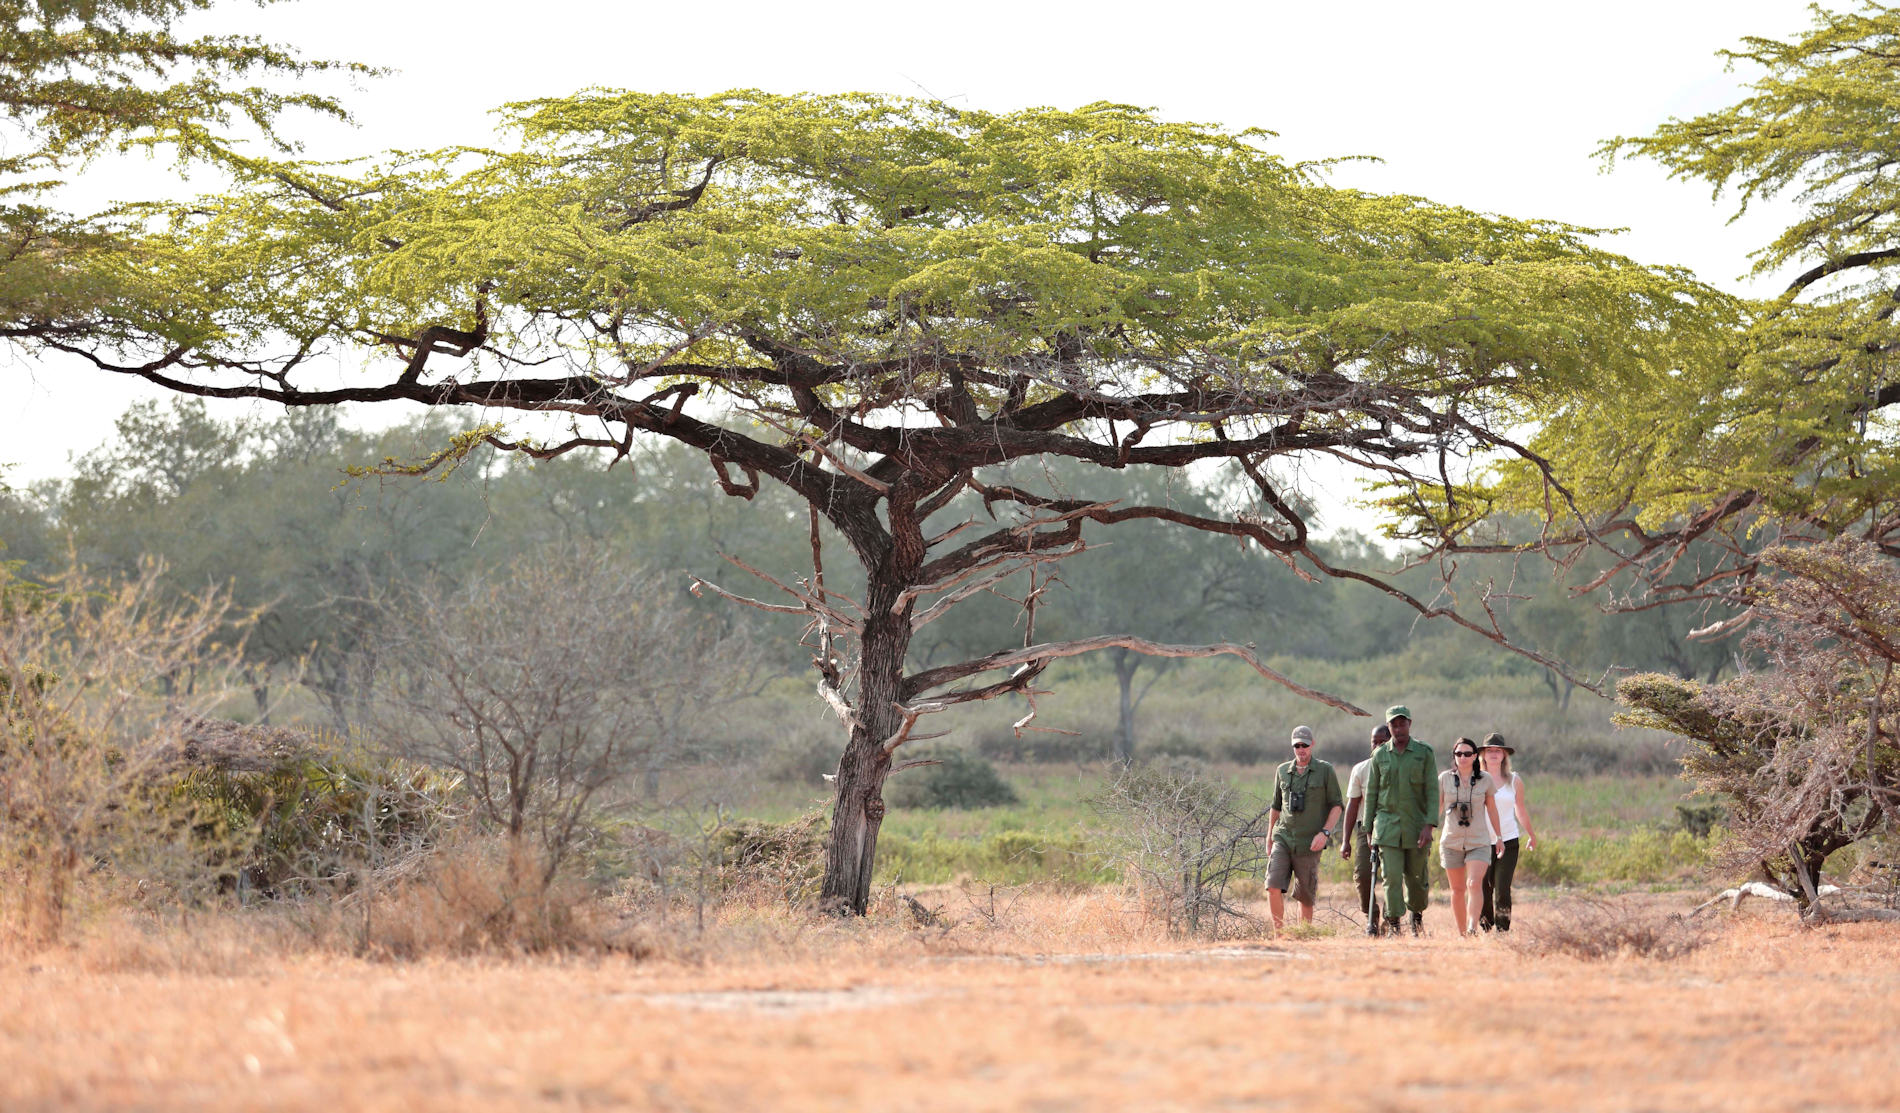 Guided Walks Roho ya Camp Selous Tanzania Asilia Africa